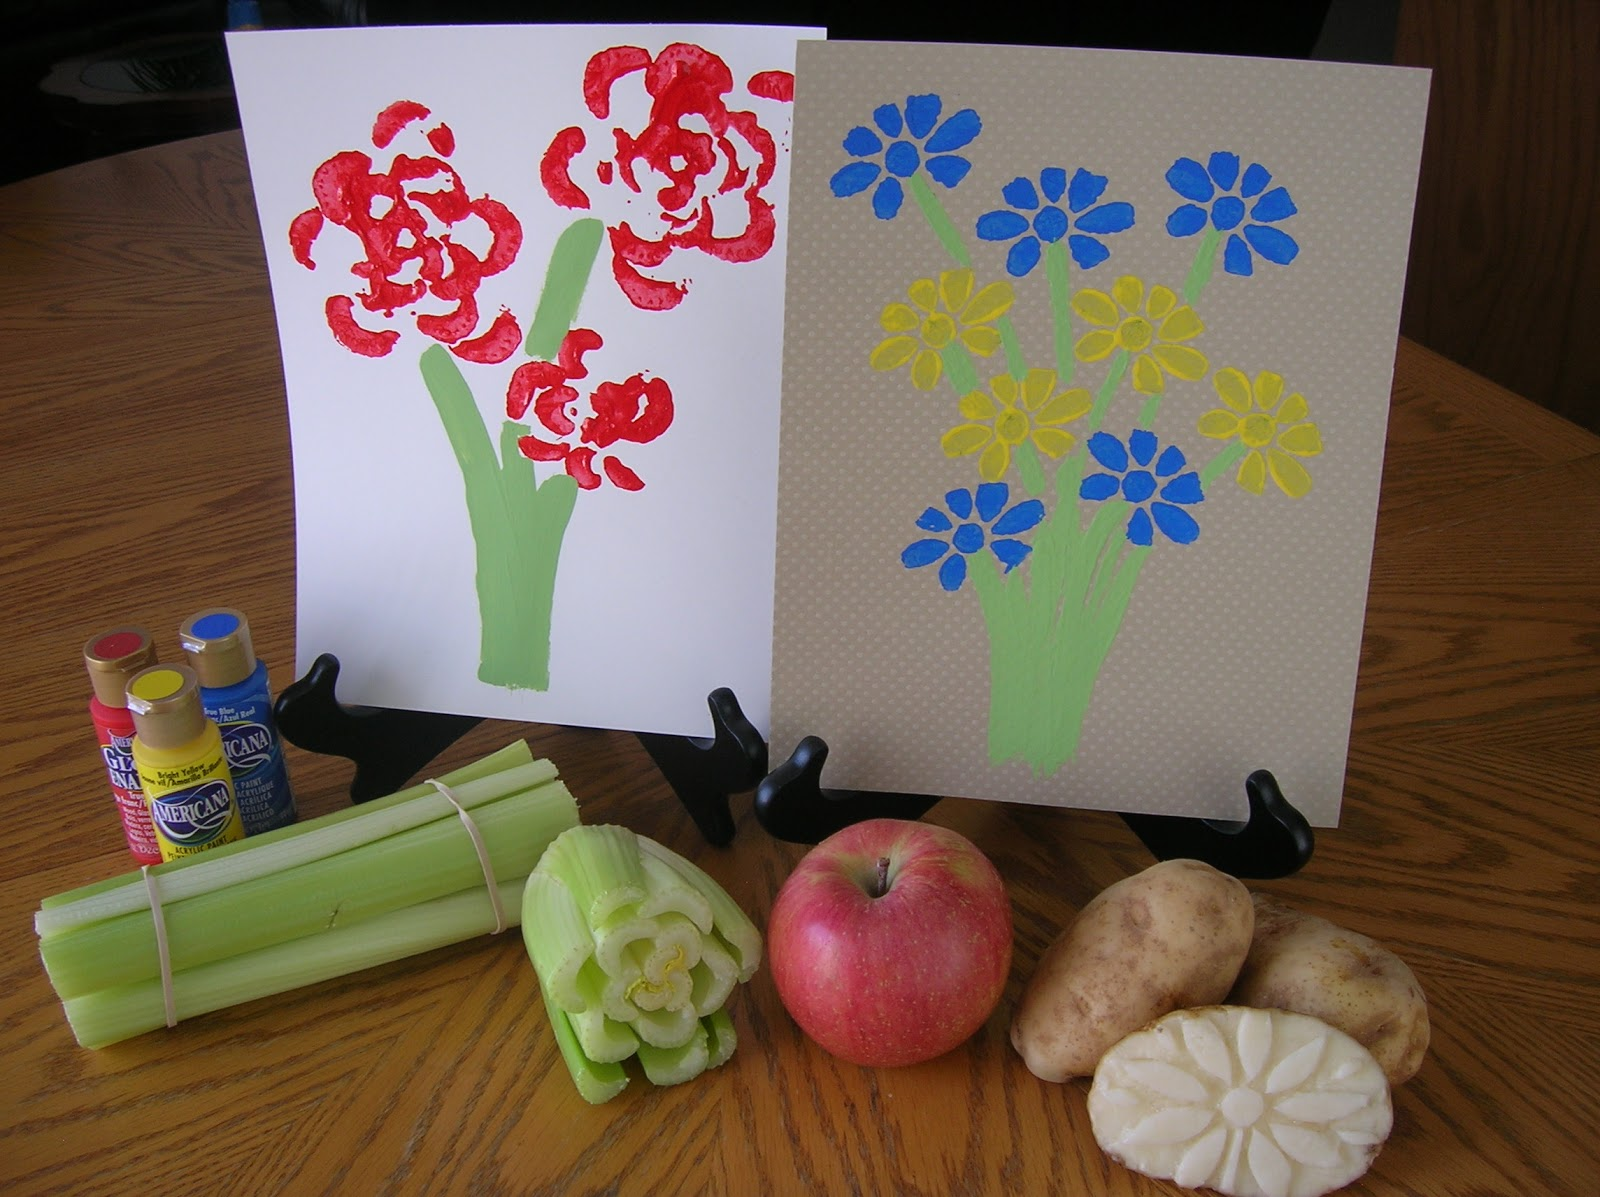 food stamping kids love stamping with fruits and vegetables use a potato apple celery strawberry etc to make beautiful paintings and prints on